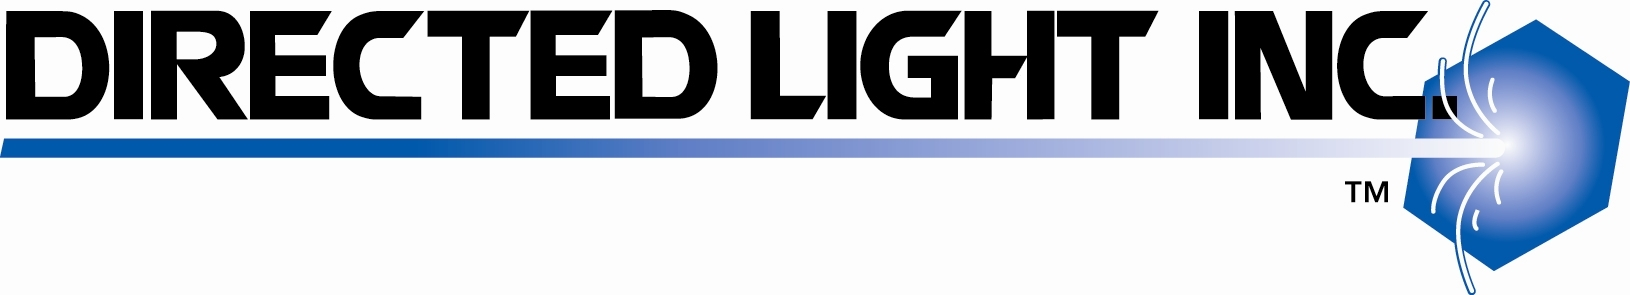 Directed Light Inc. has sold its laser contract manufacturing unit to Laserage Technology Corporation